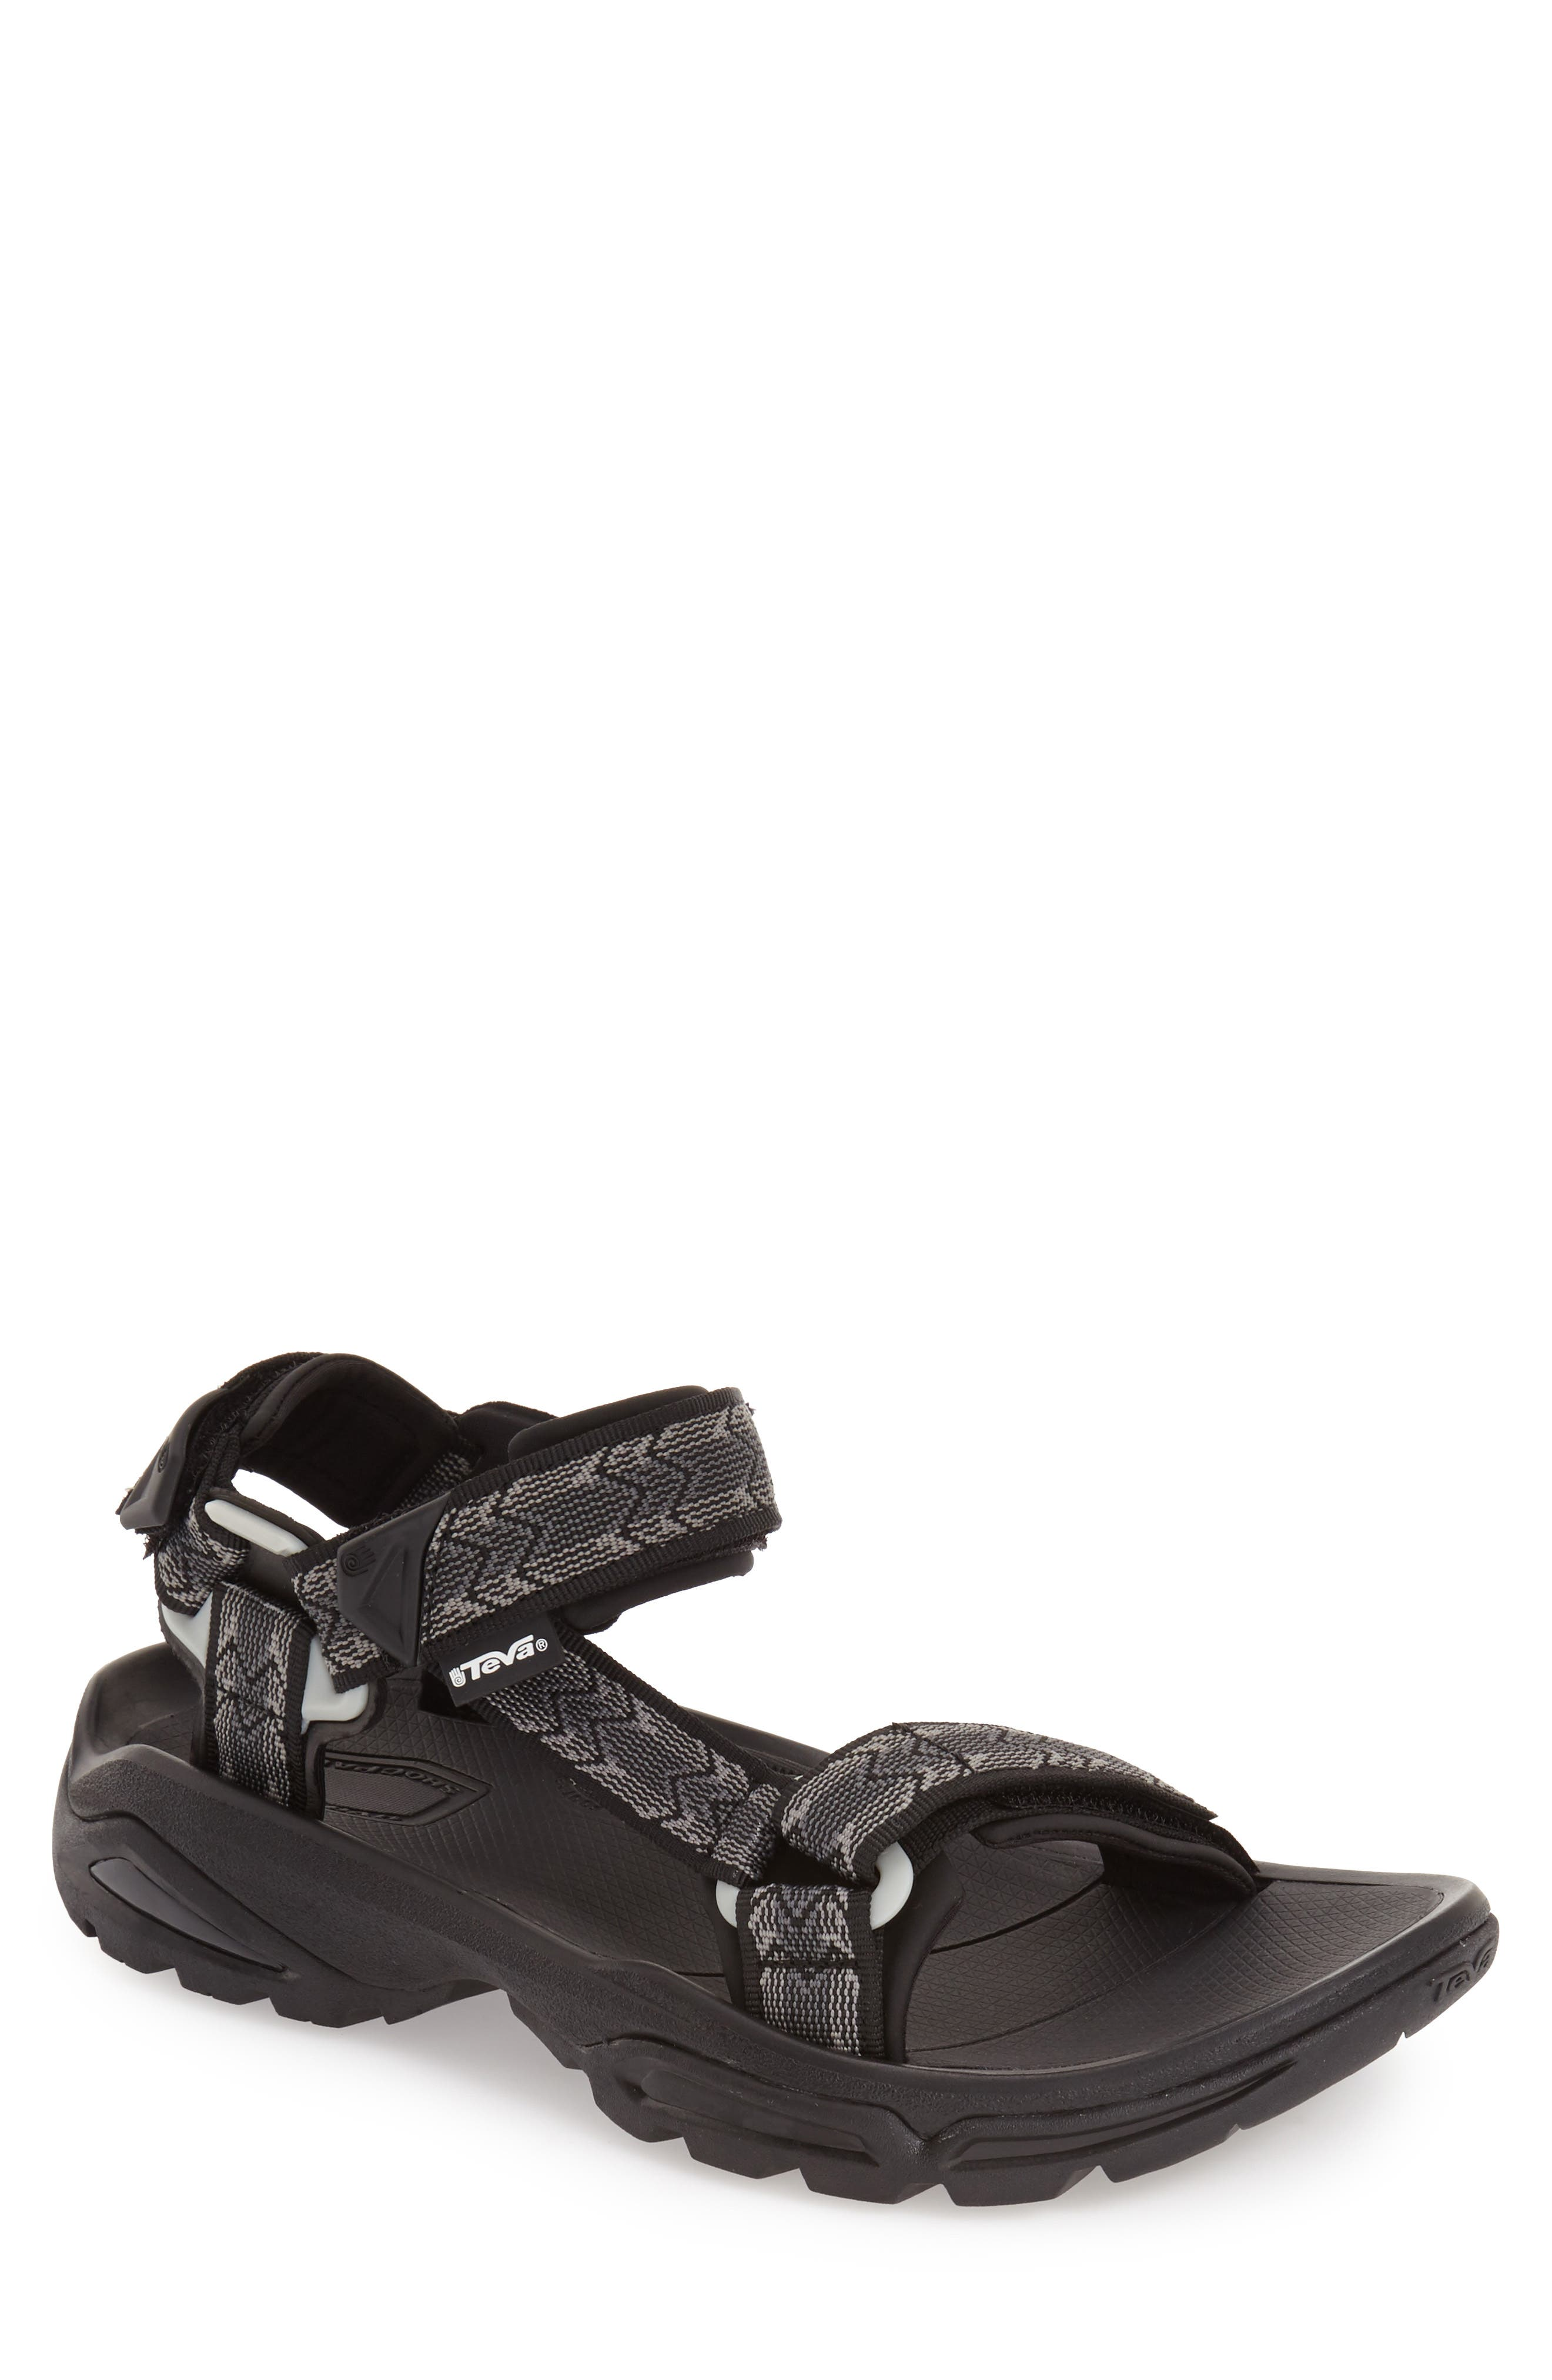 'Terra Fi 4' Sandal,                             Alternate thumbnail 4, color,                             CROSS TERRA BLACK